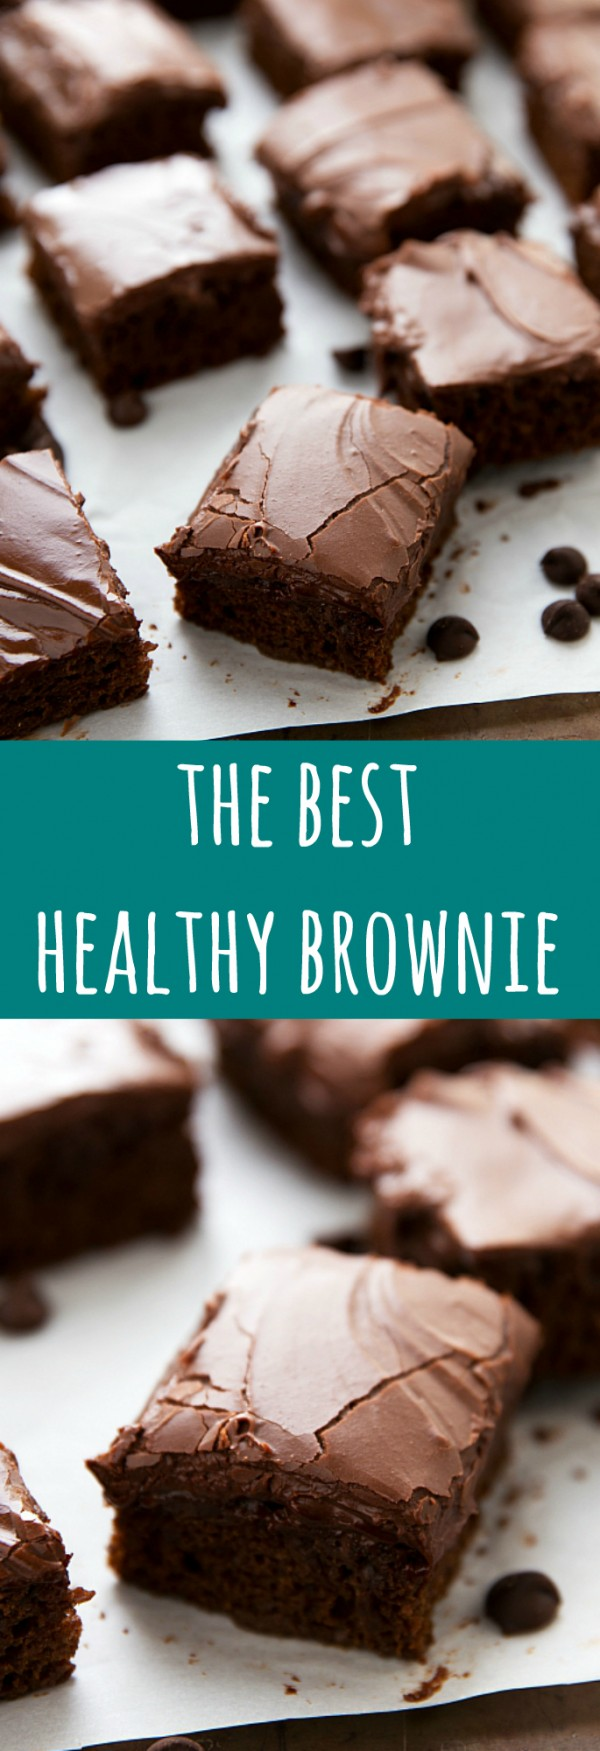 Get the recipe Healthy Brownie @recipes_to_go